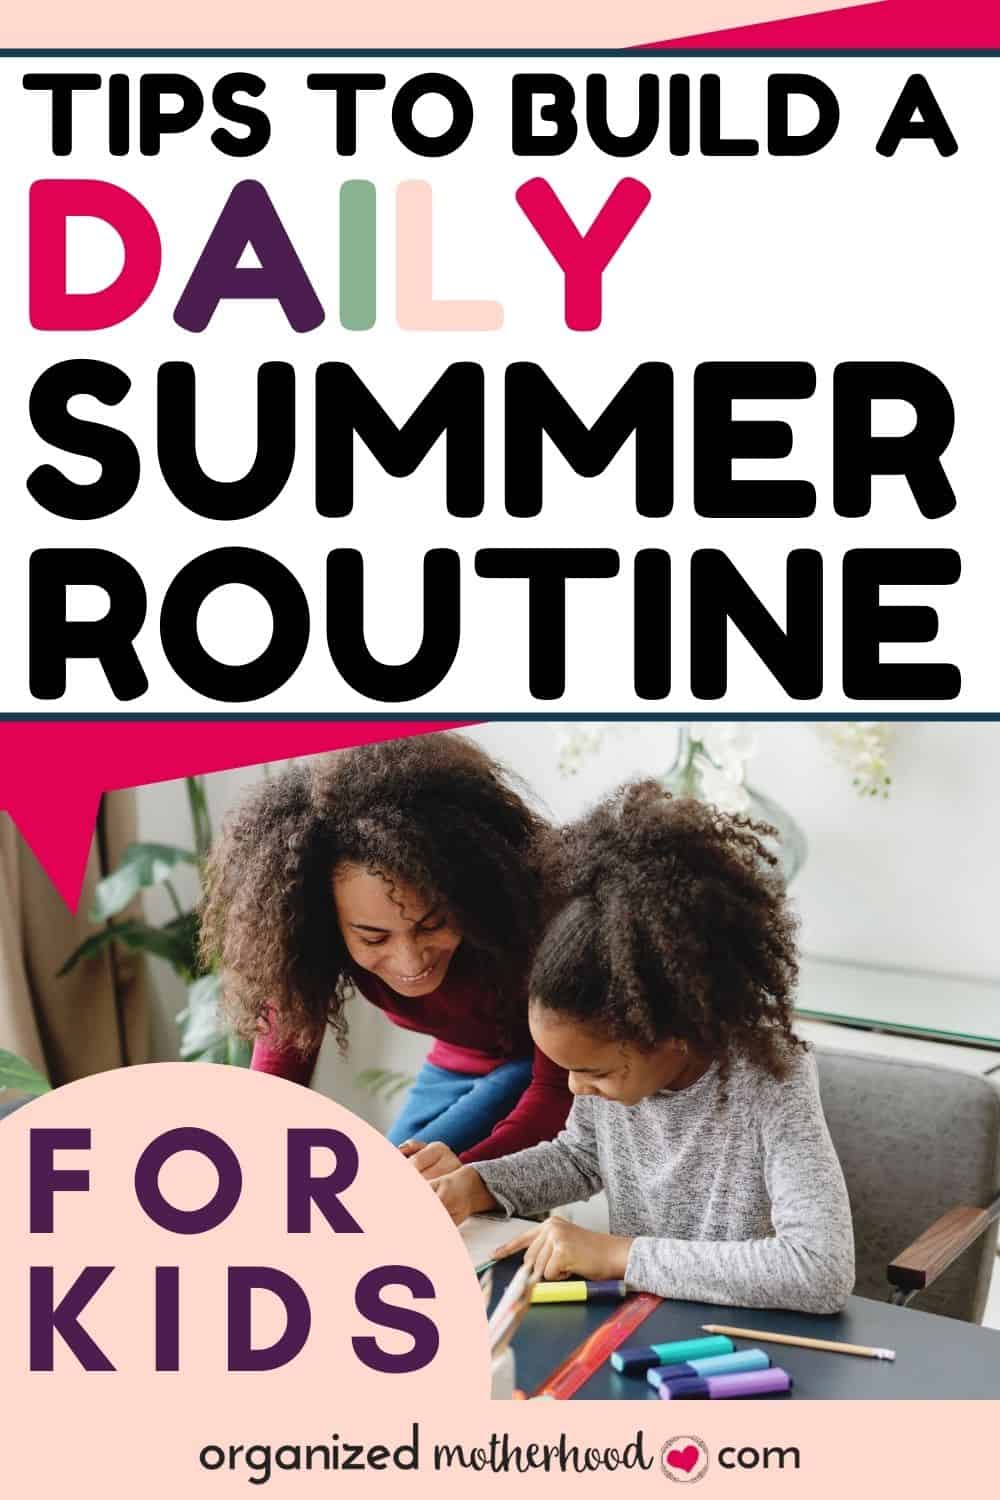 Daily summer routine for kids: how to create the best schedule to keep your kids on task while still doing all the fun vacation activities.